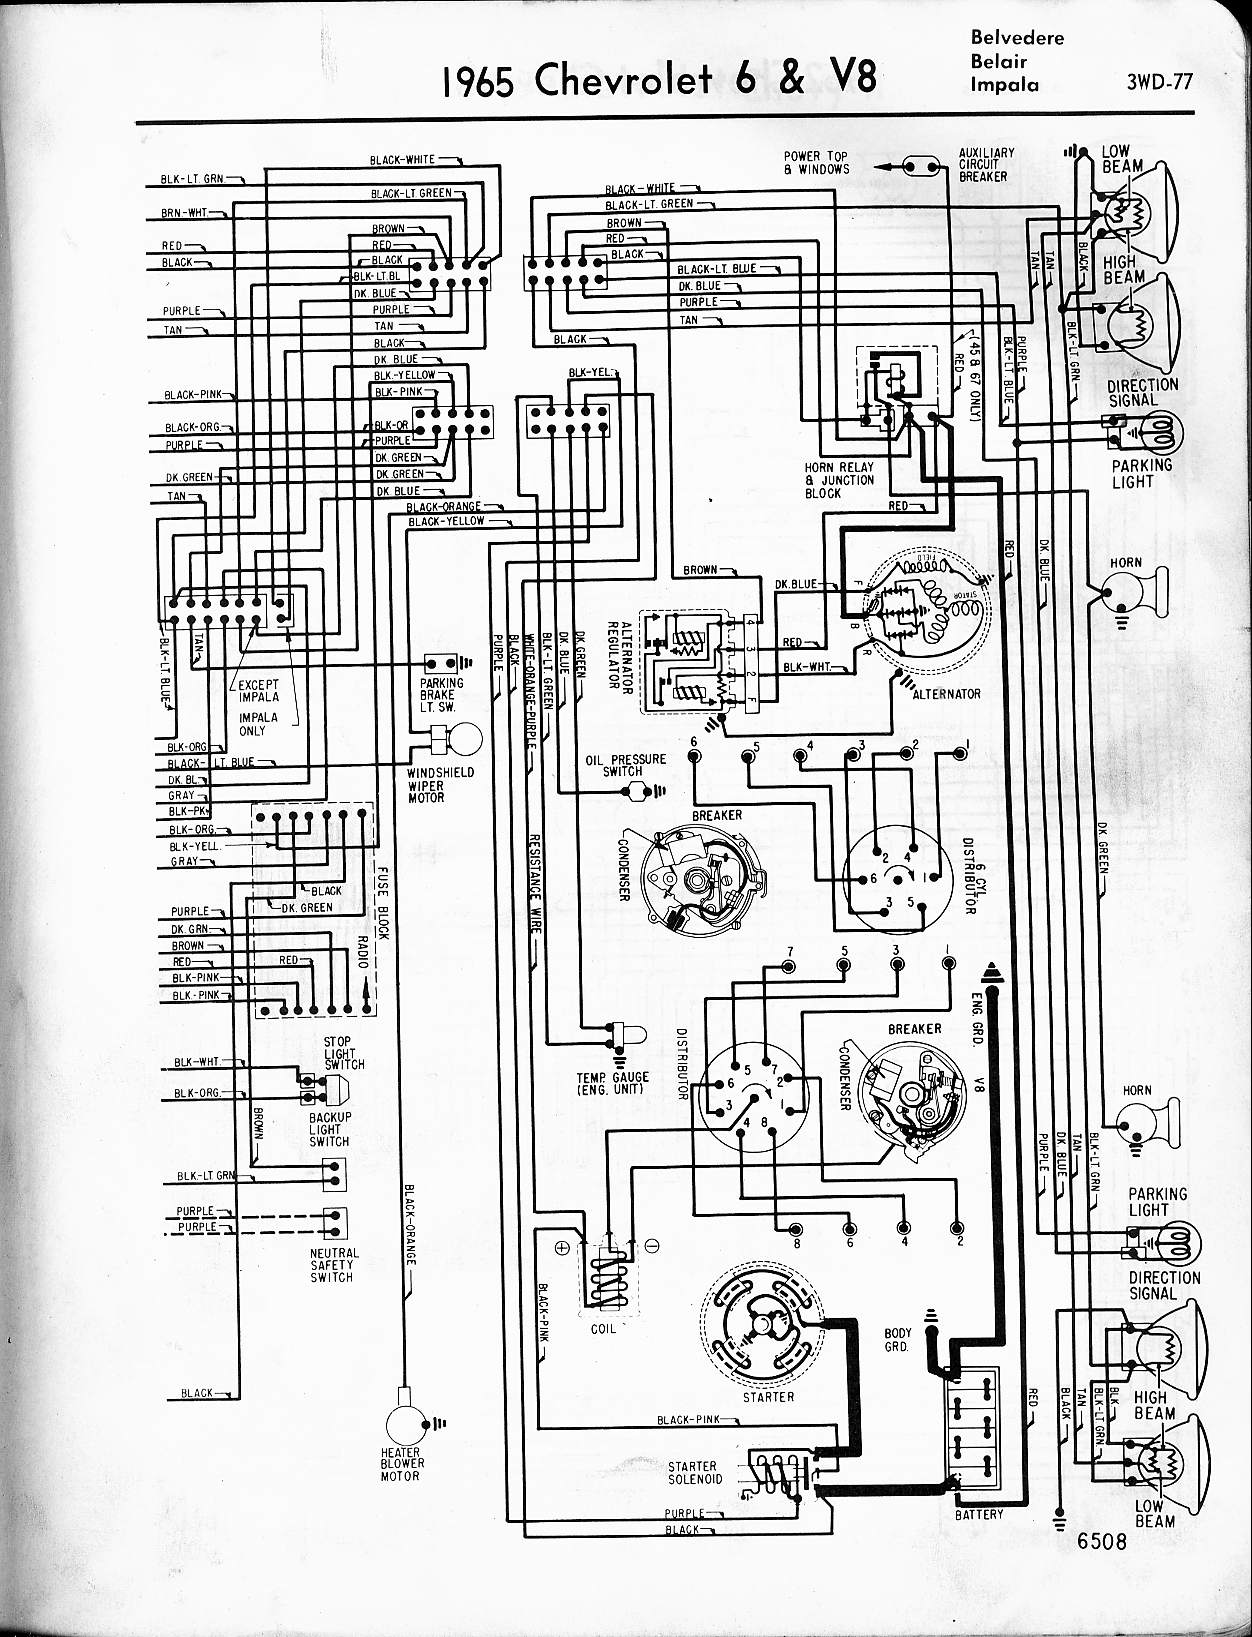 1964 Impala Convertible Top Wiring Diagram Will Be 2003 Chevy 57 65 Diagrams 1963 2012 Radio